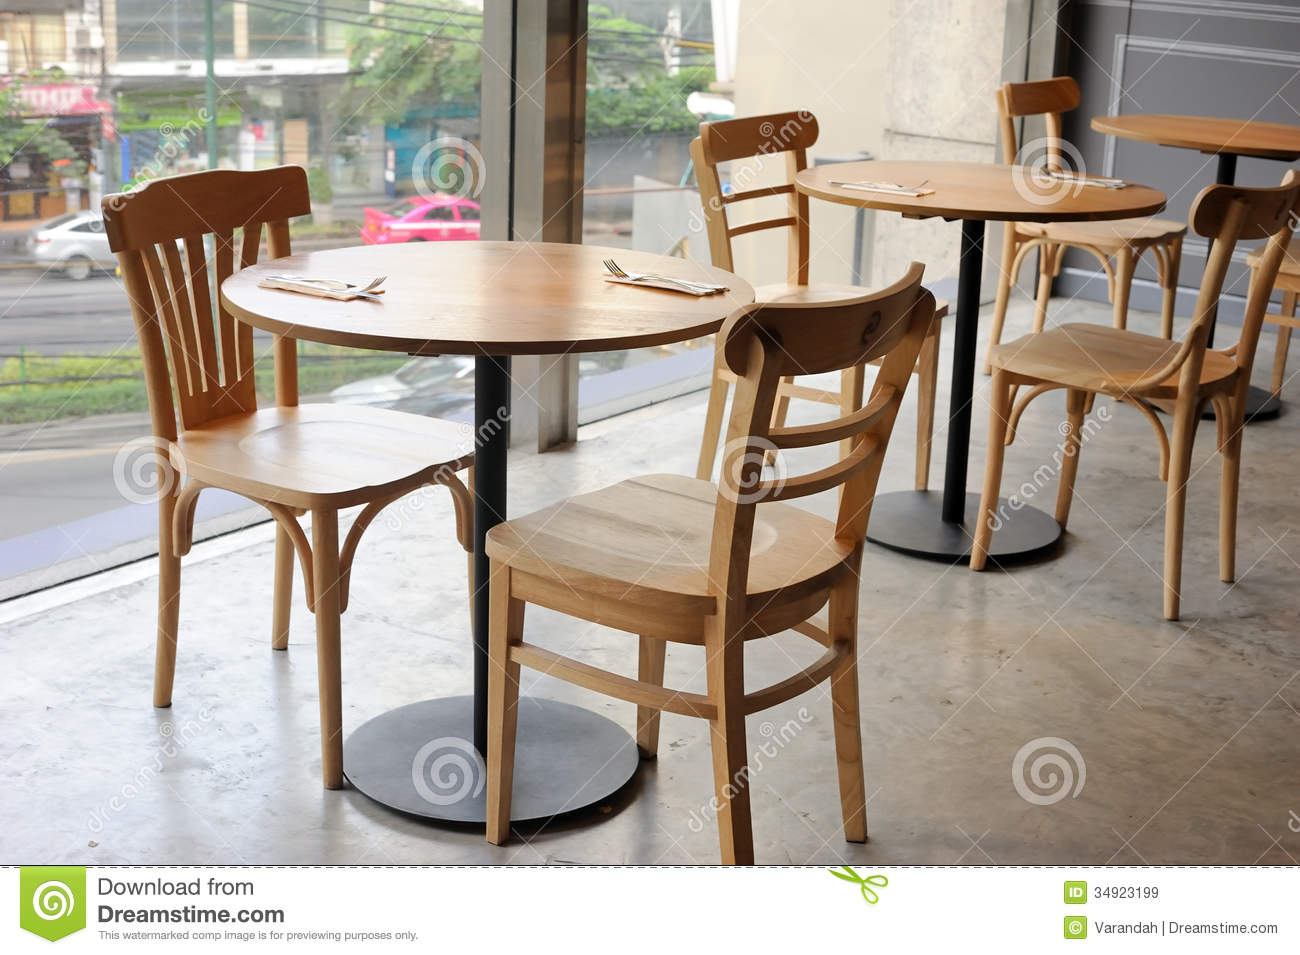 Exceptional Wooden Chair And Table In Cafe Near Glass Wall